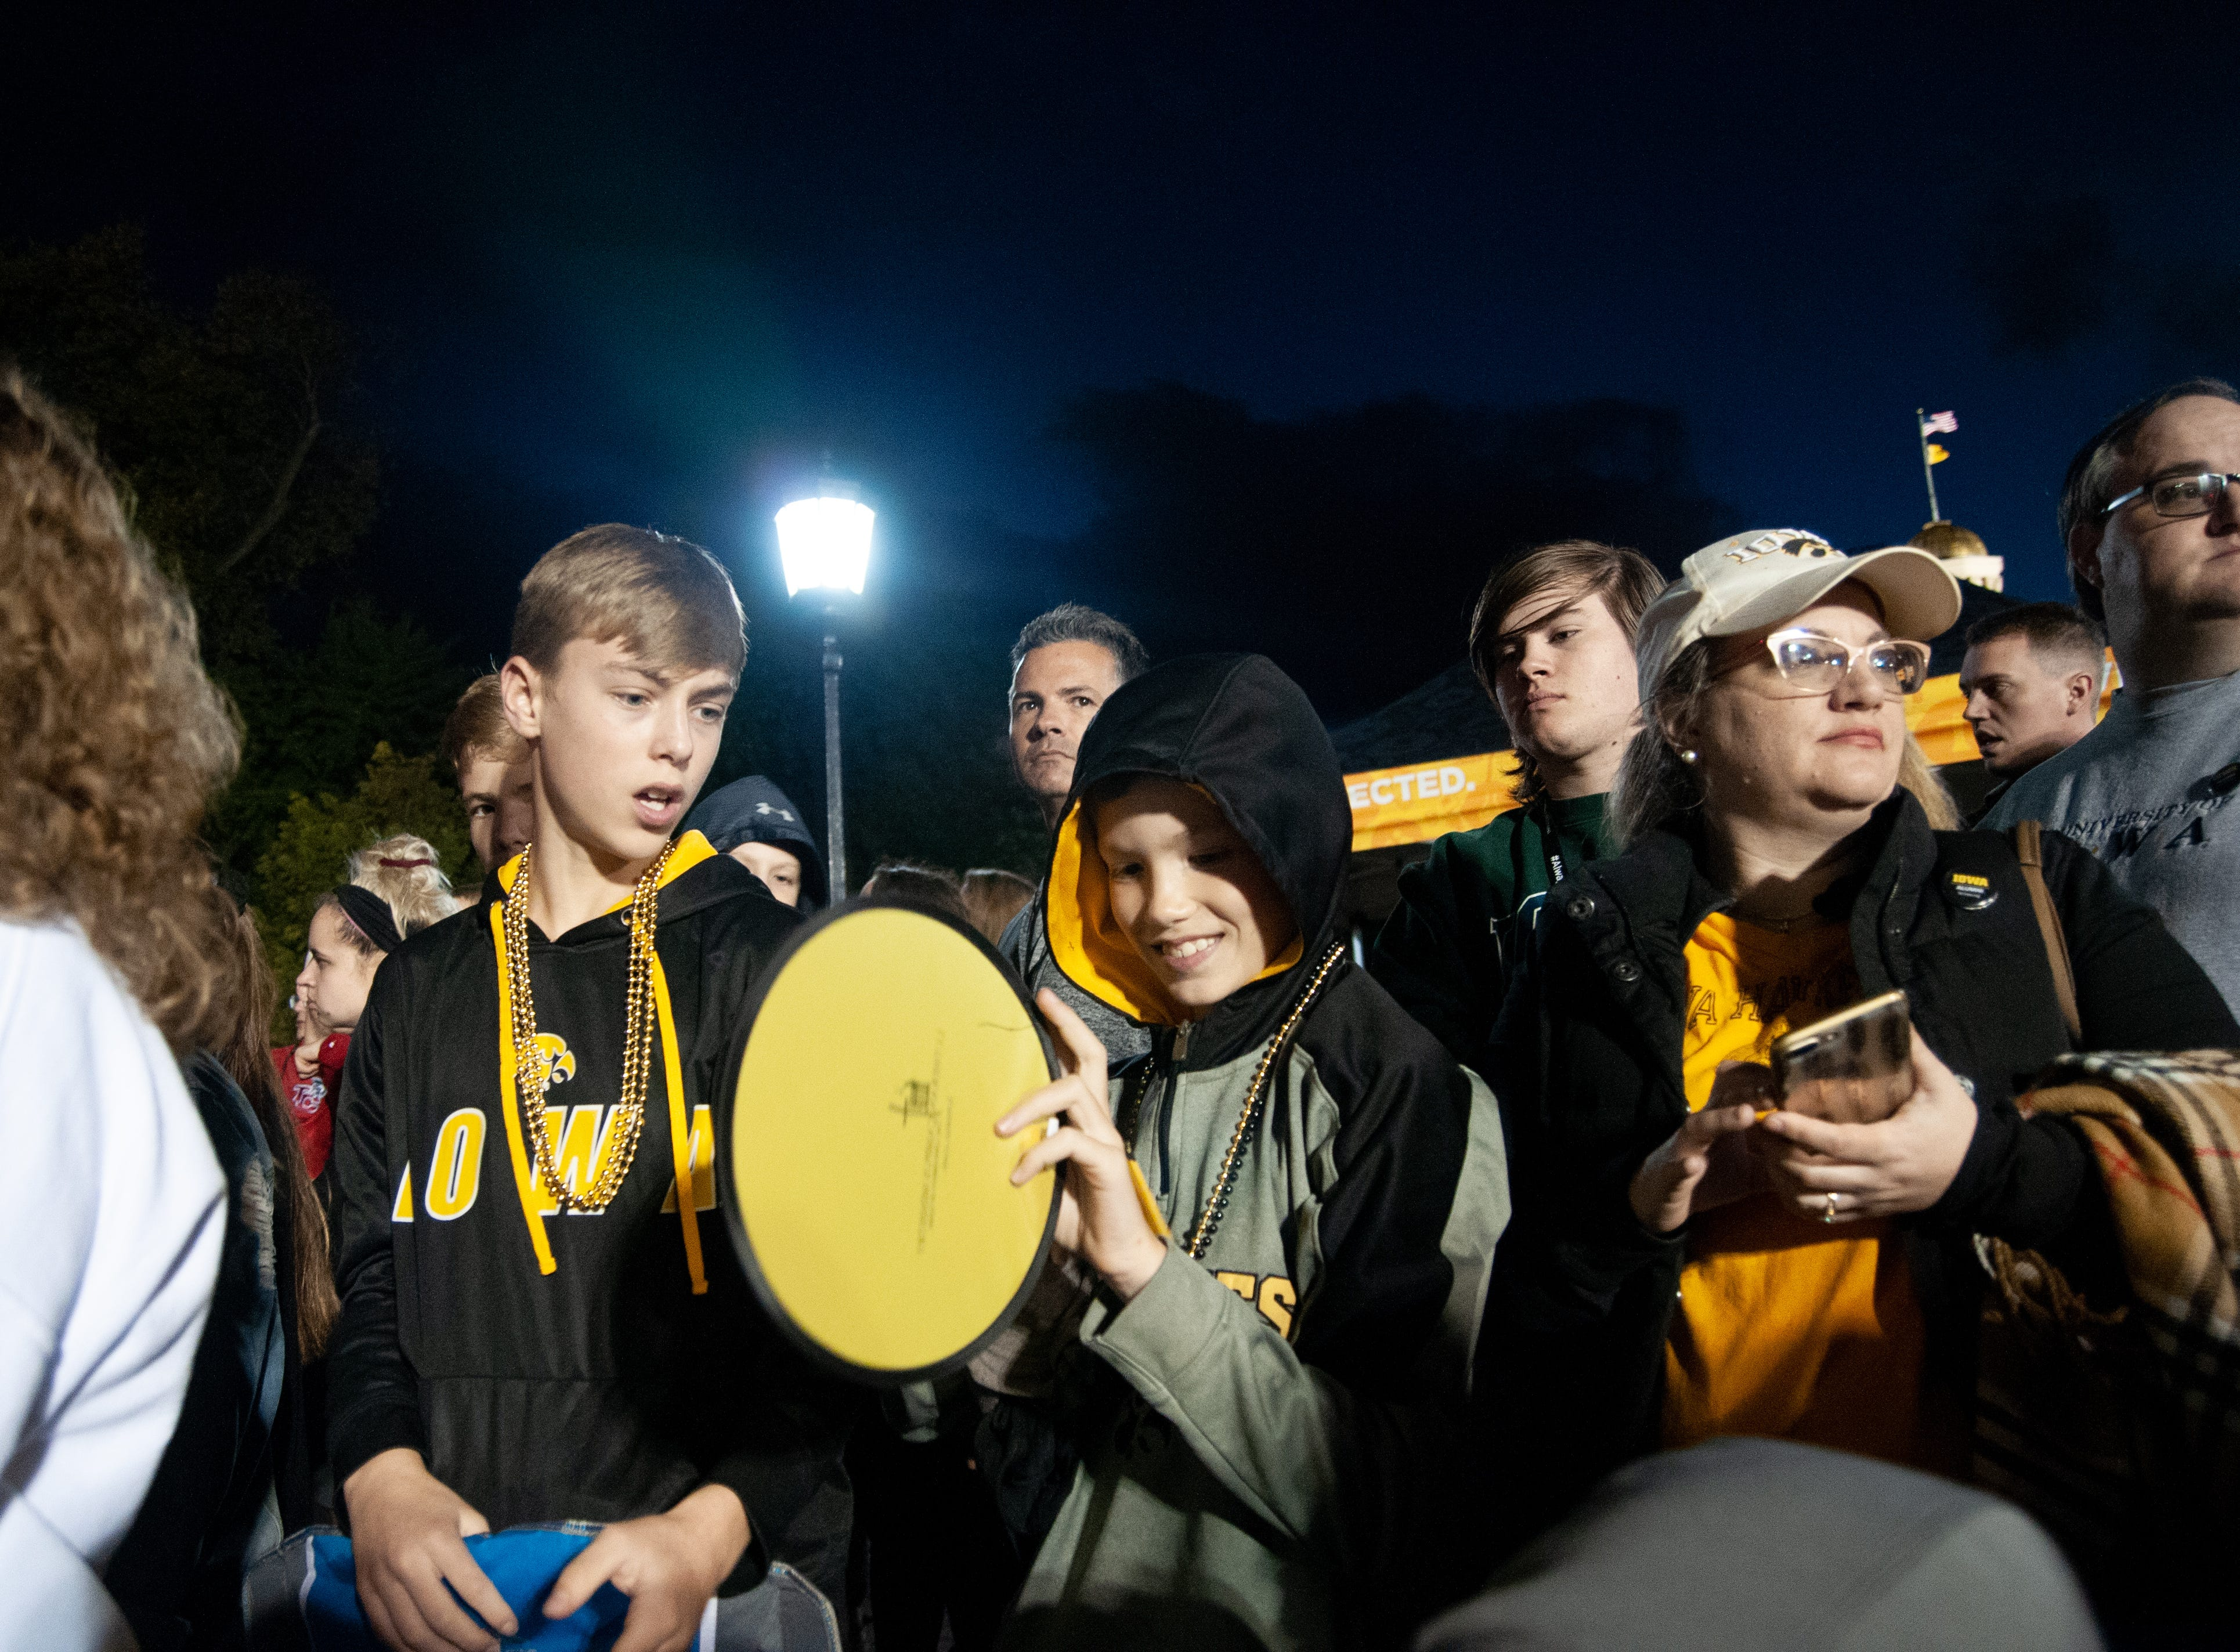 Ben Claussen, 10, admires his new frisbee during the 2018 Homecoming parade, Friday, Oct. 19, 2018, in Iowa City.